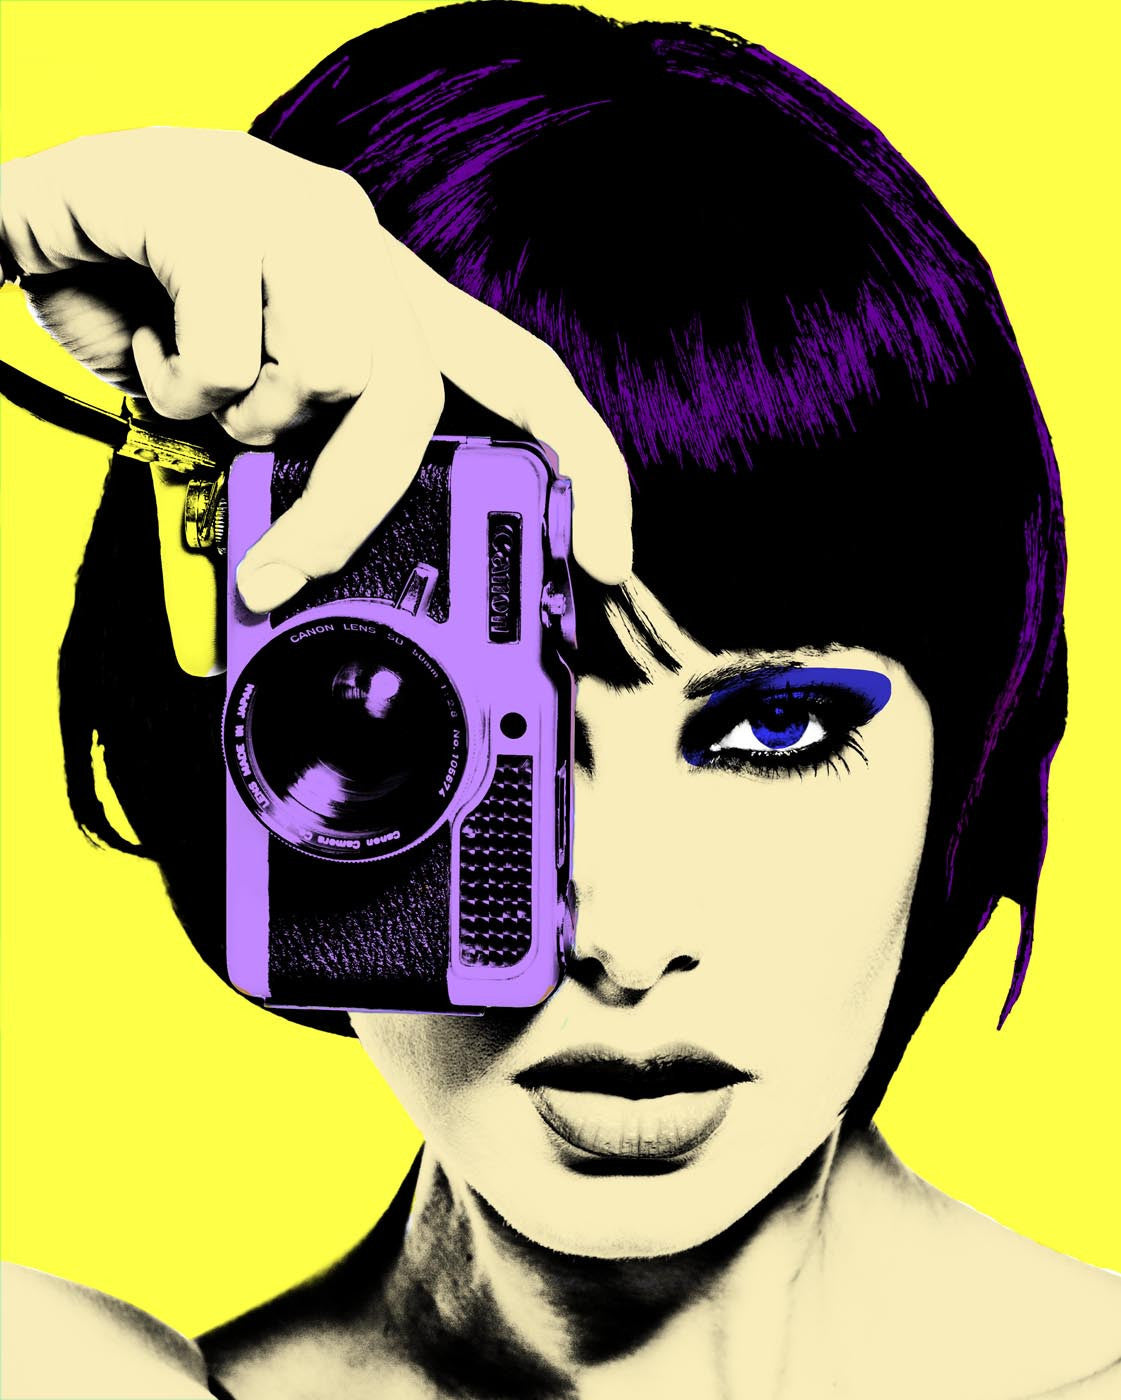 Pop Art - Girl With Camera - Canvas Prints by Aditi Musunur | Buy ...